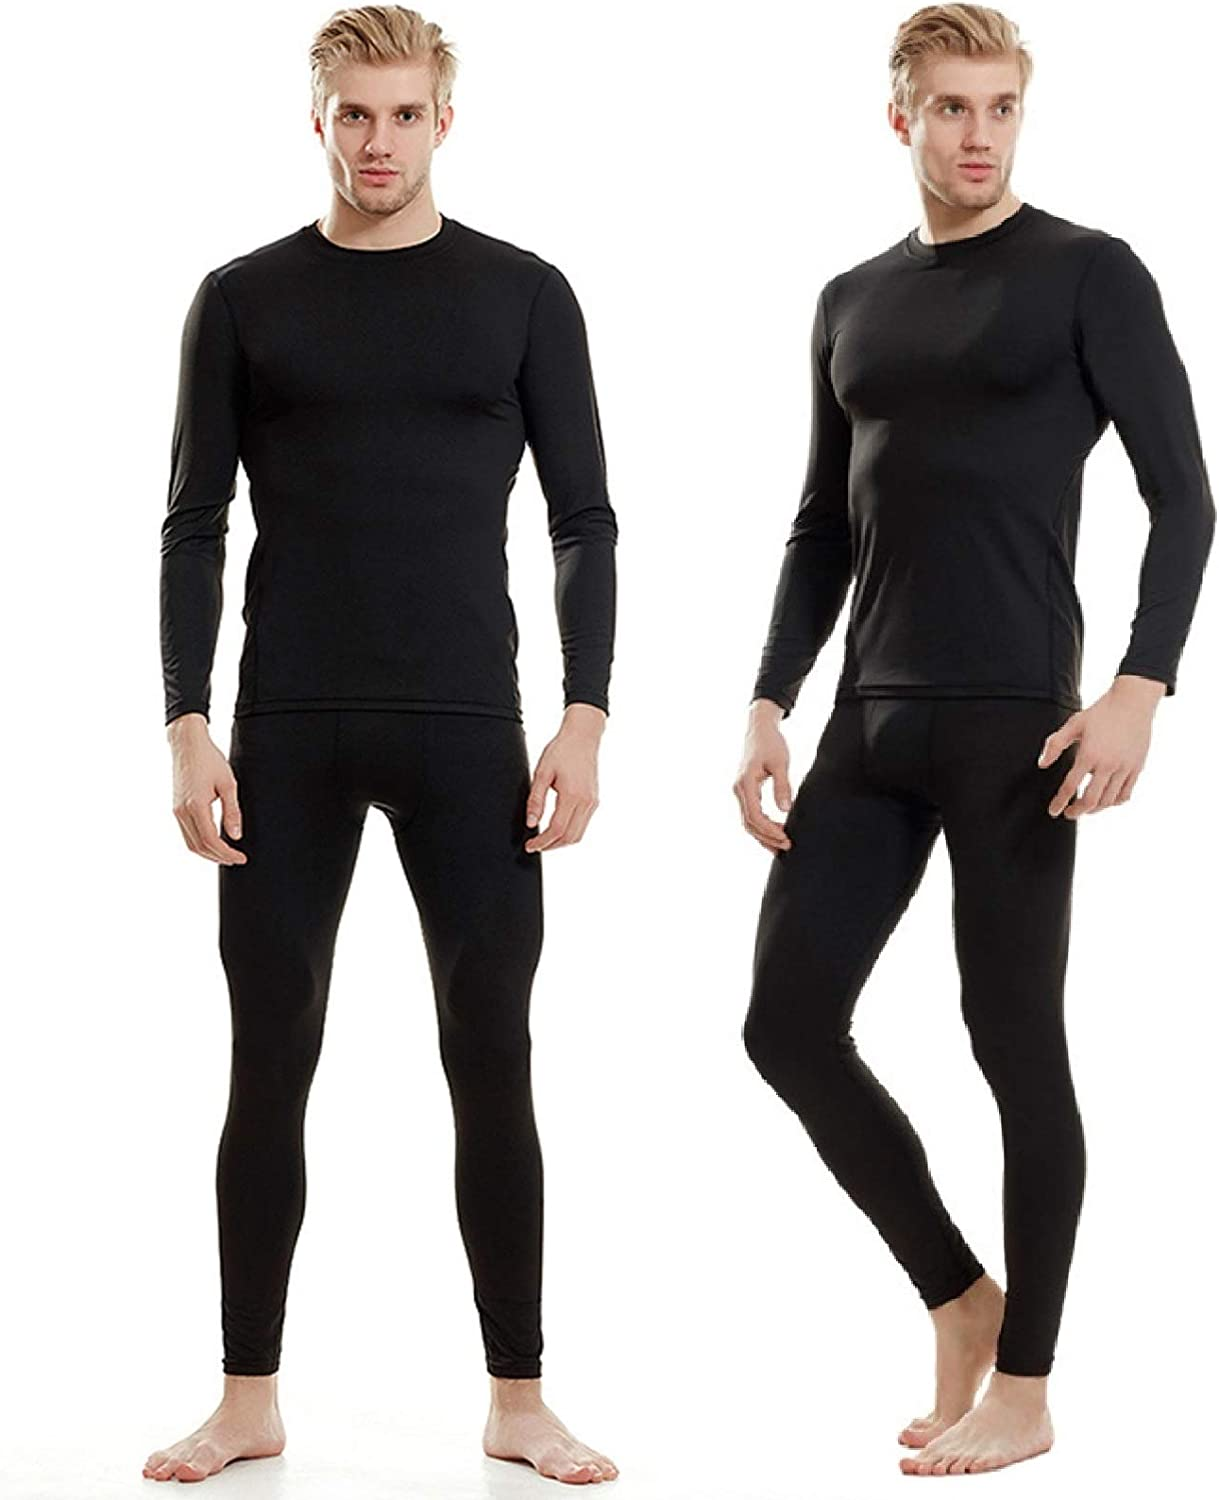 YYIXING Men Thermal Union Suit Quick Dry Winter Thermal Underwear Fitness Flecce Legging Tights Undershirts for Winter